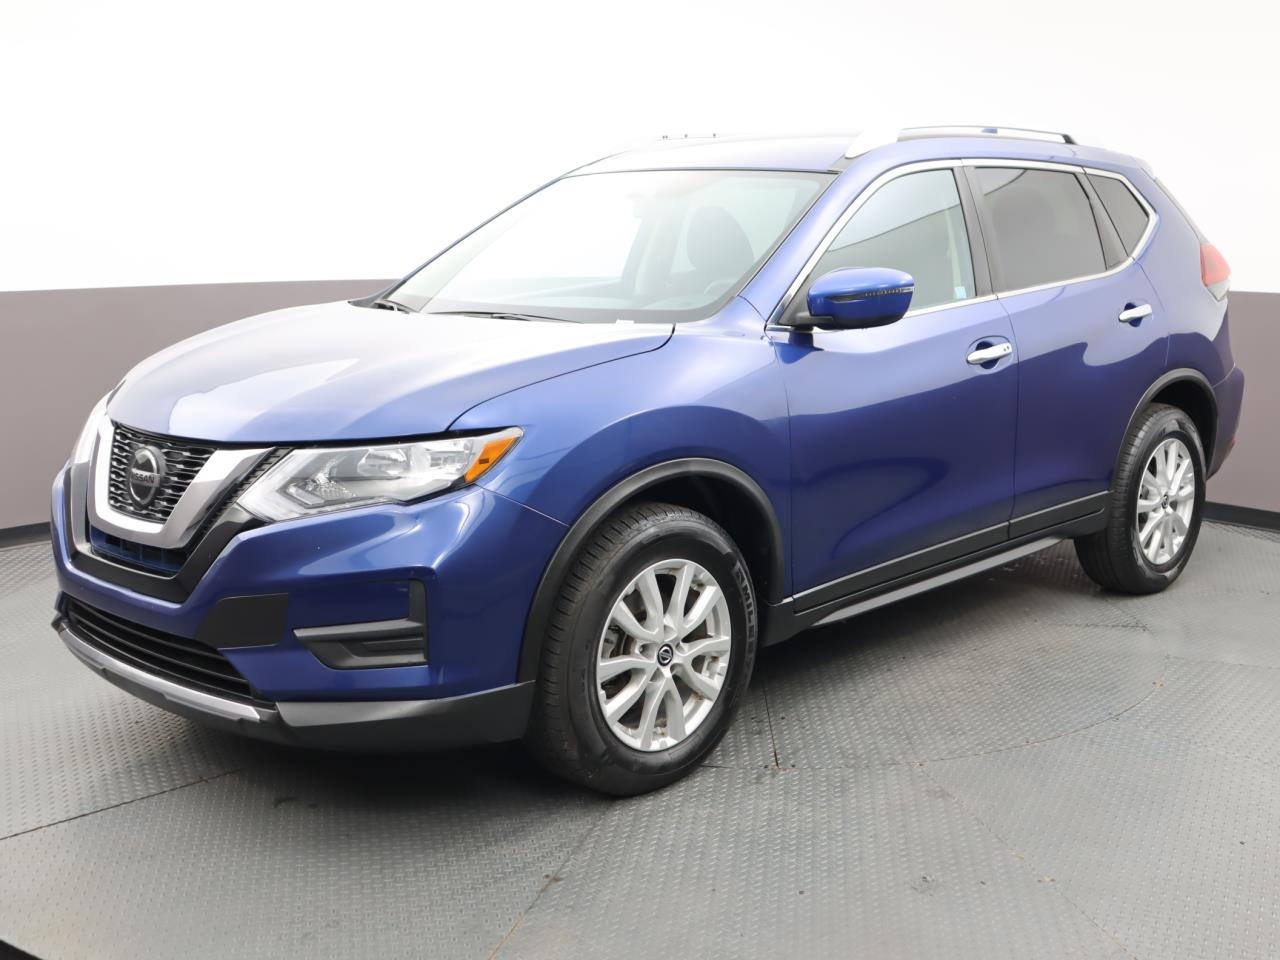 Used NISSAN ROGUE 2018 MARGATE SV